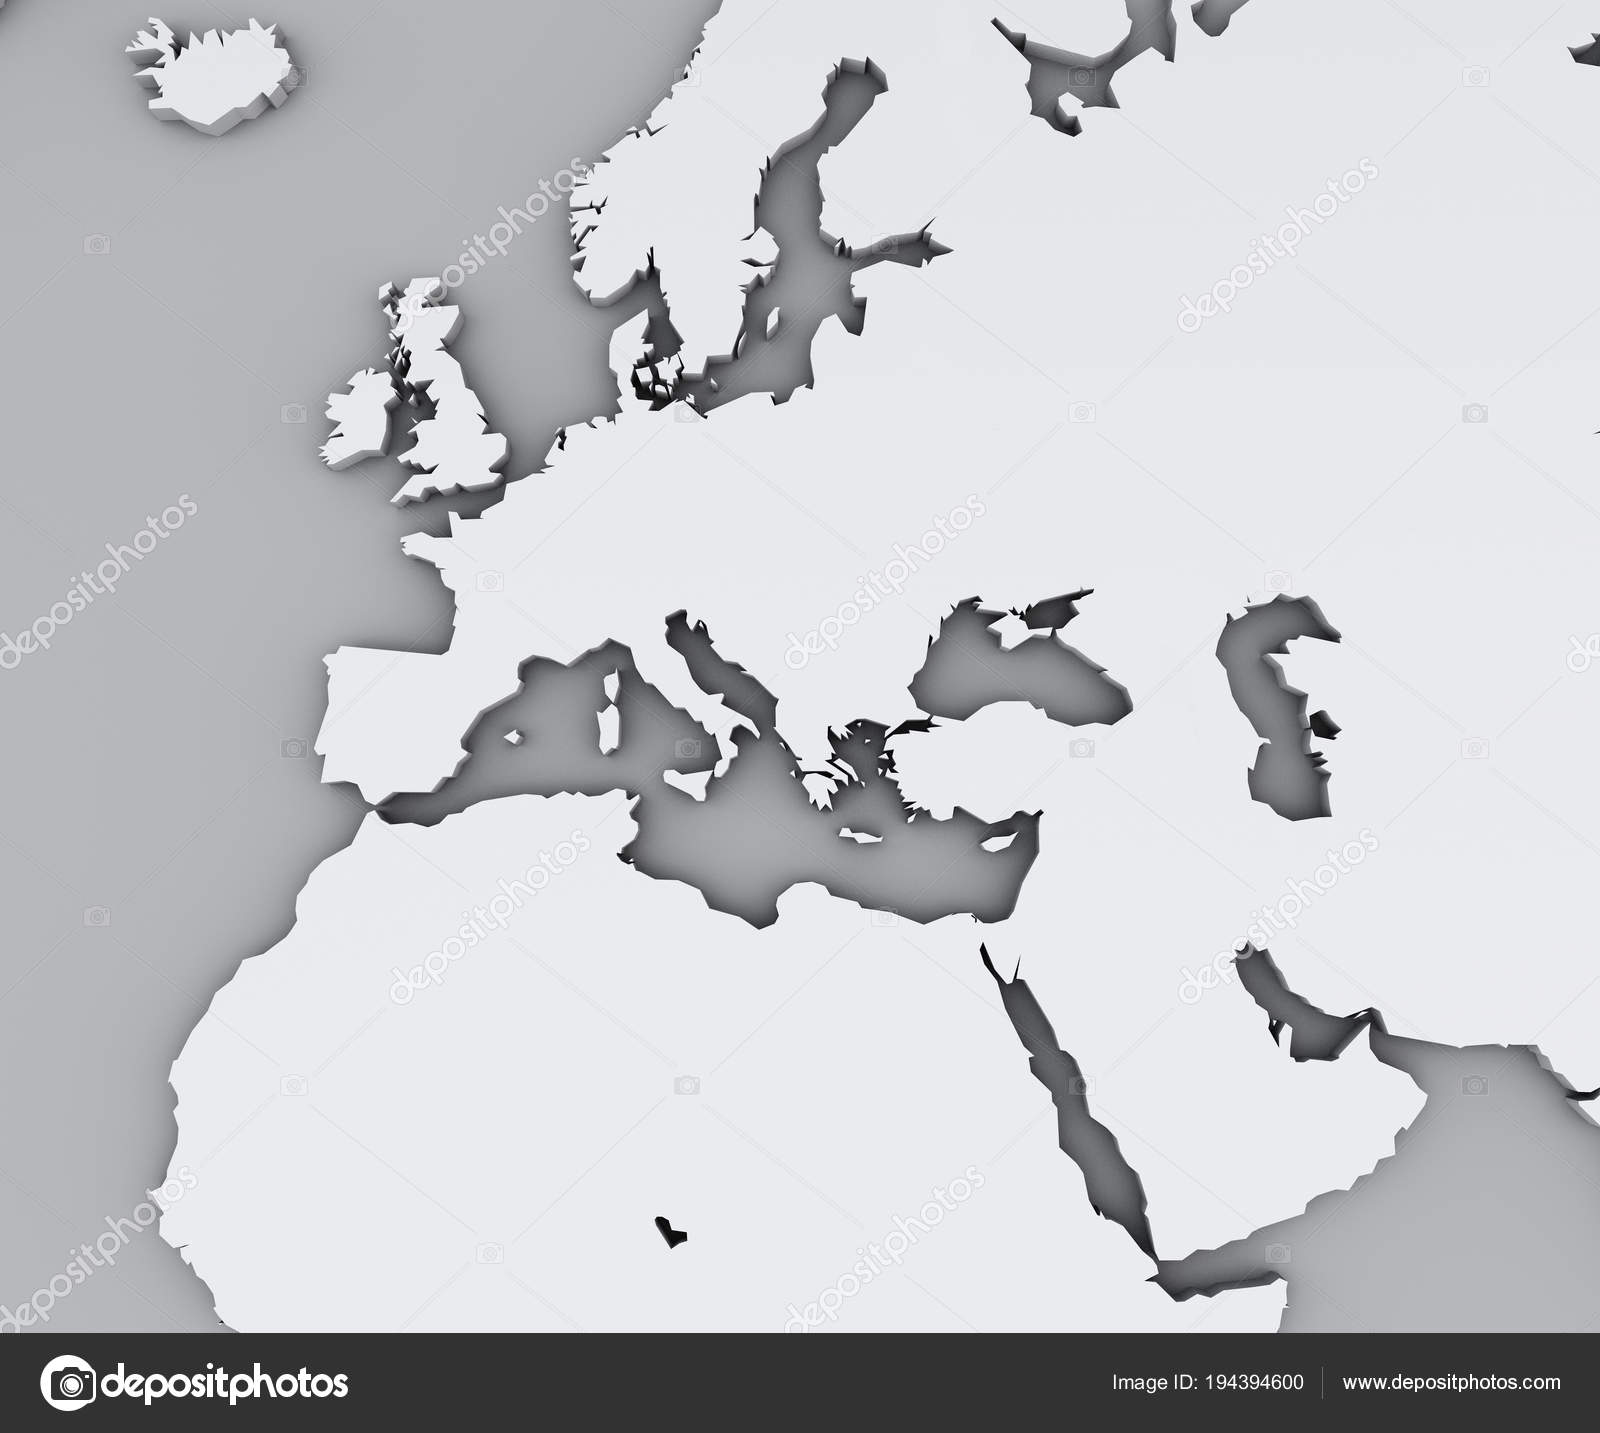 Map Mediterranean Sea Europe Africa Middle East Cartography ...